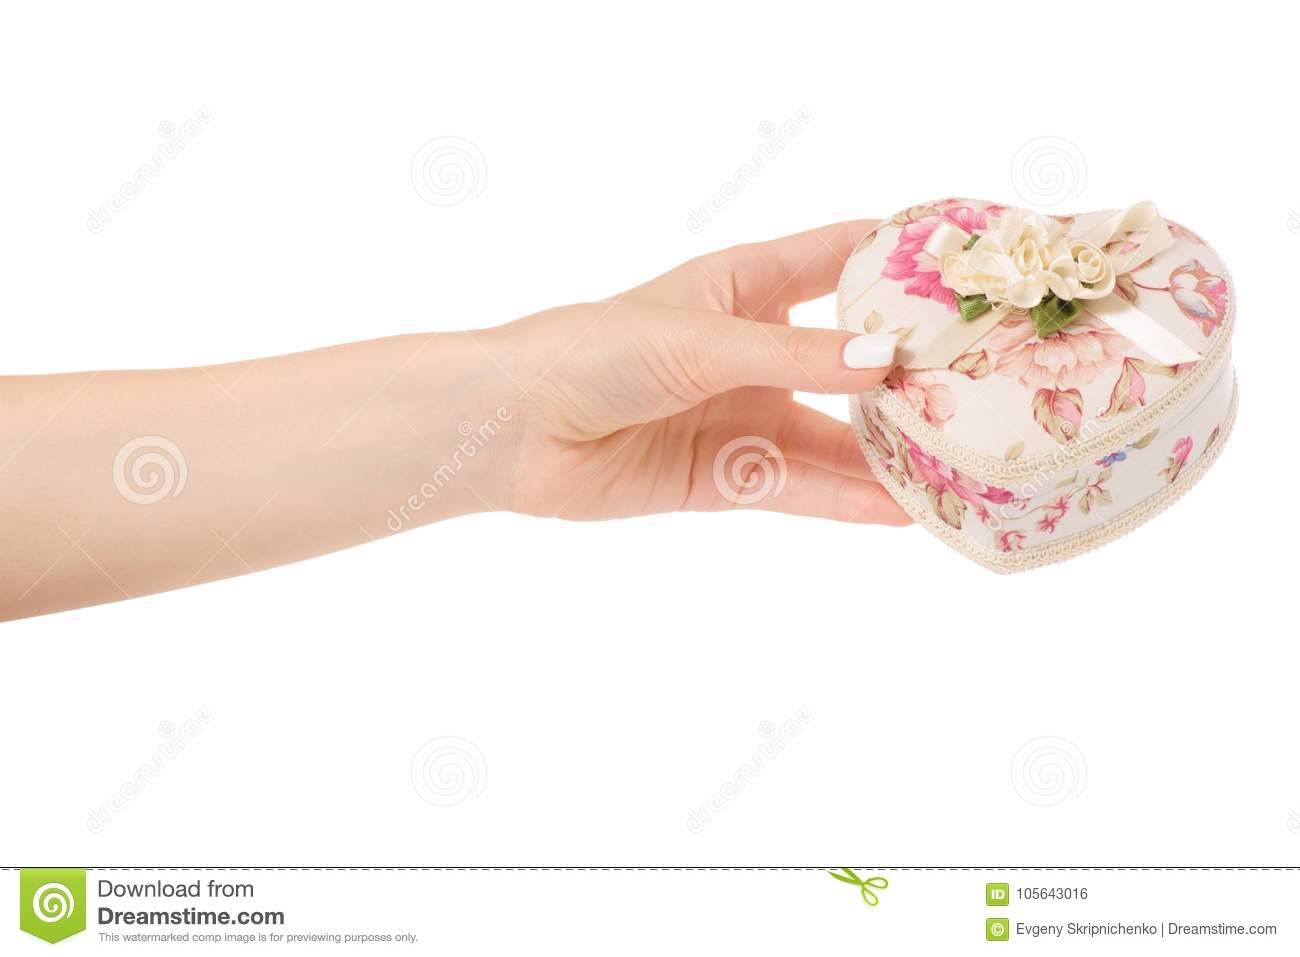 Female hand holding a casket jewelry